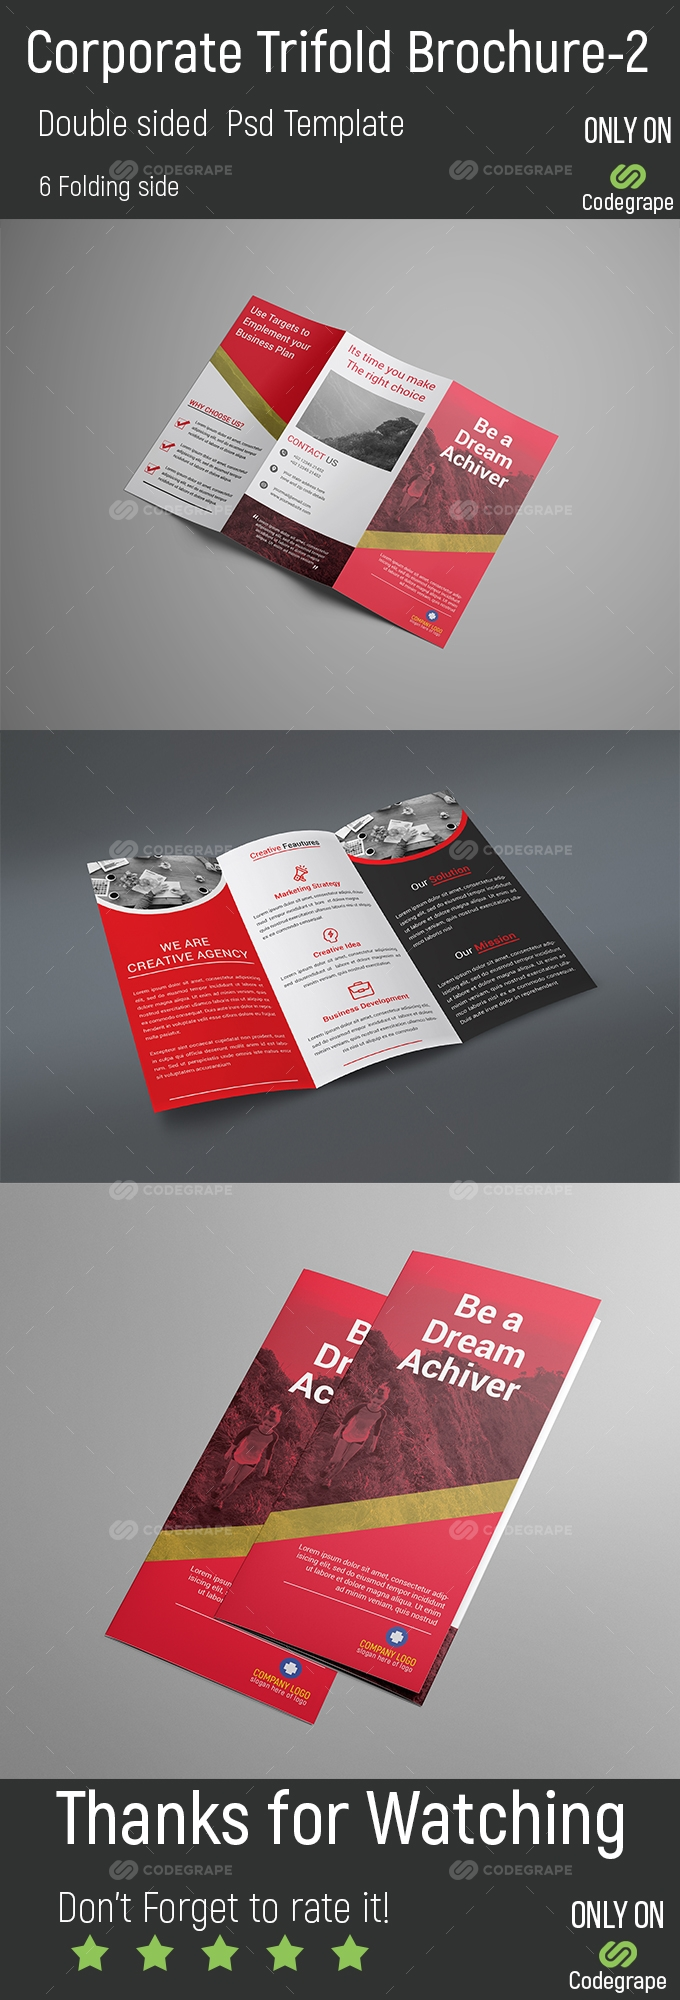 Corporate Trifold Brochure-2